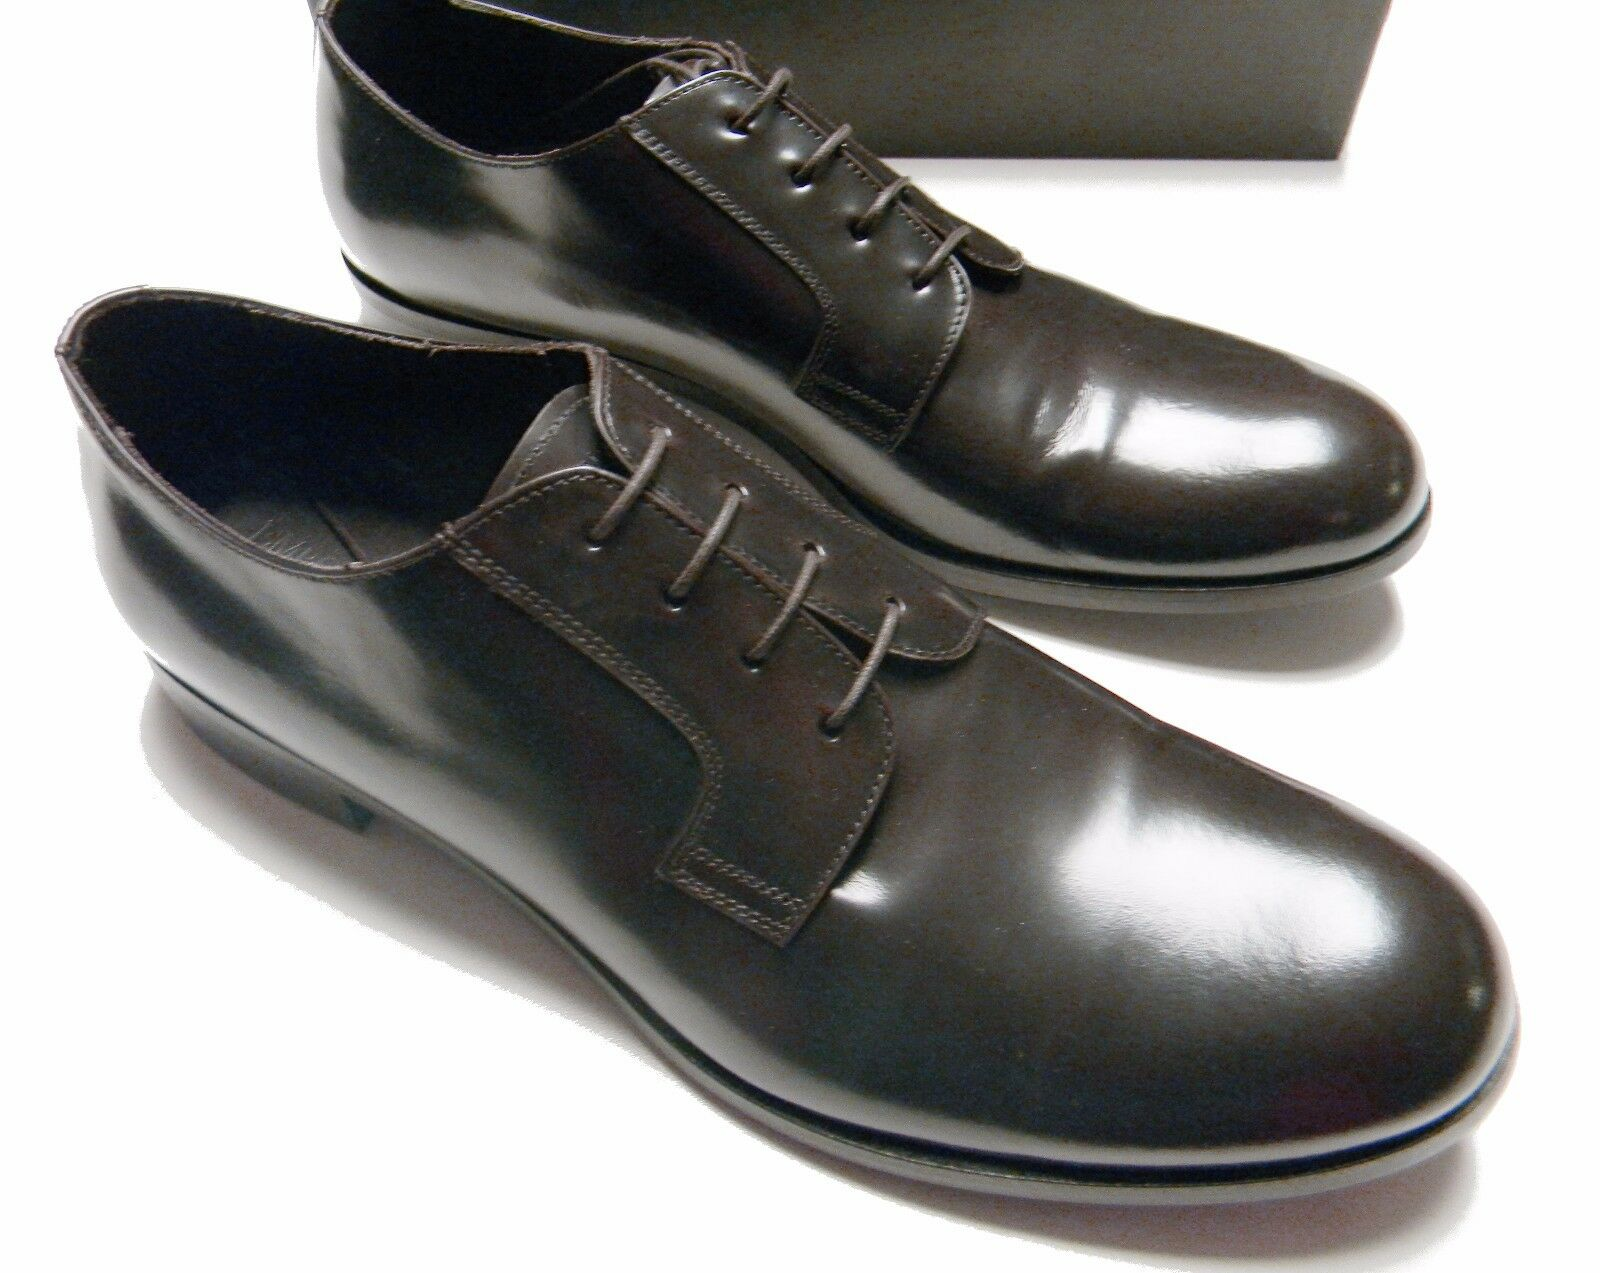 EMPORIO ARMANI Men's CLASSIC DERBY X4C182 Leather LACE-UP Brown DRESS SHOES - 10